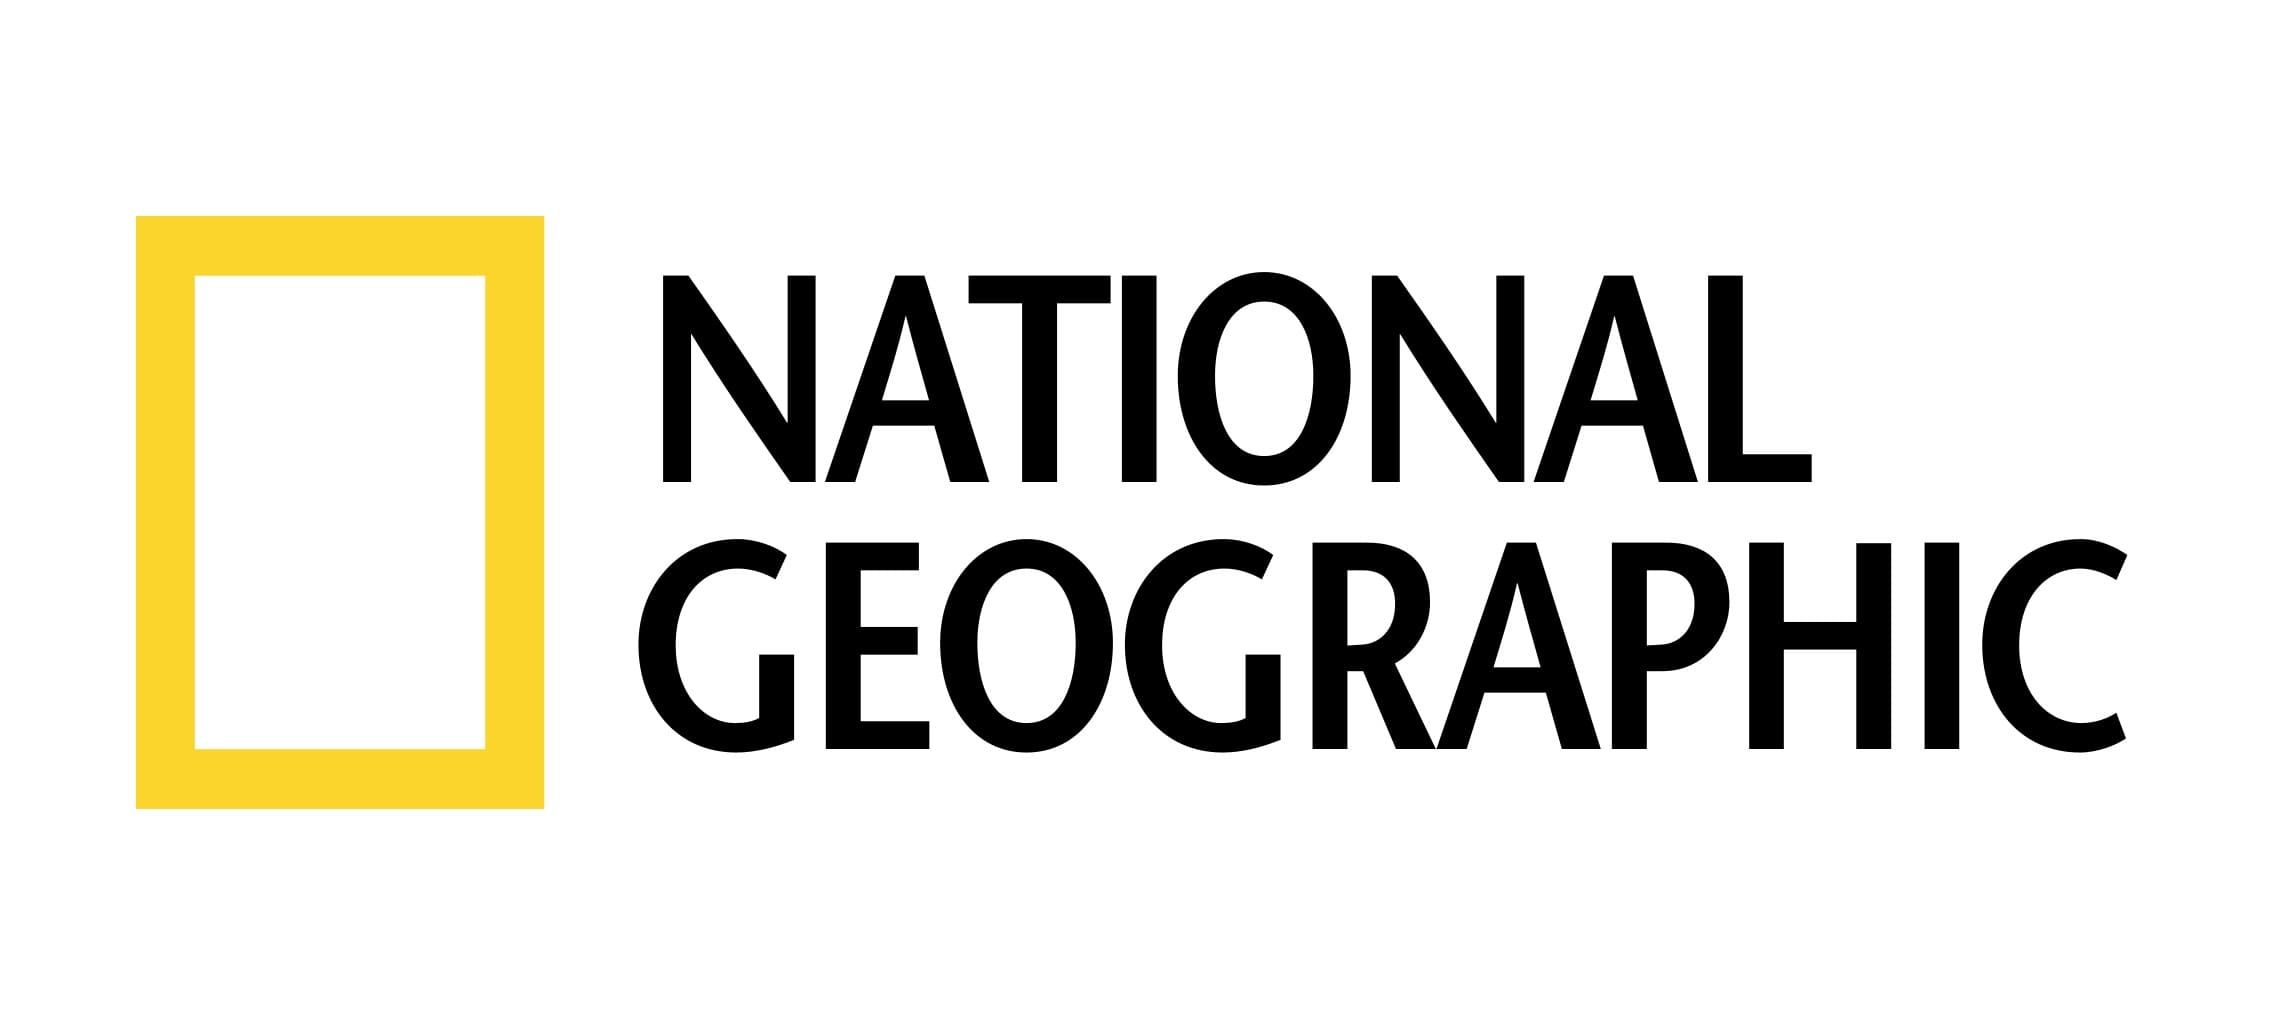 Revista - National Geographic